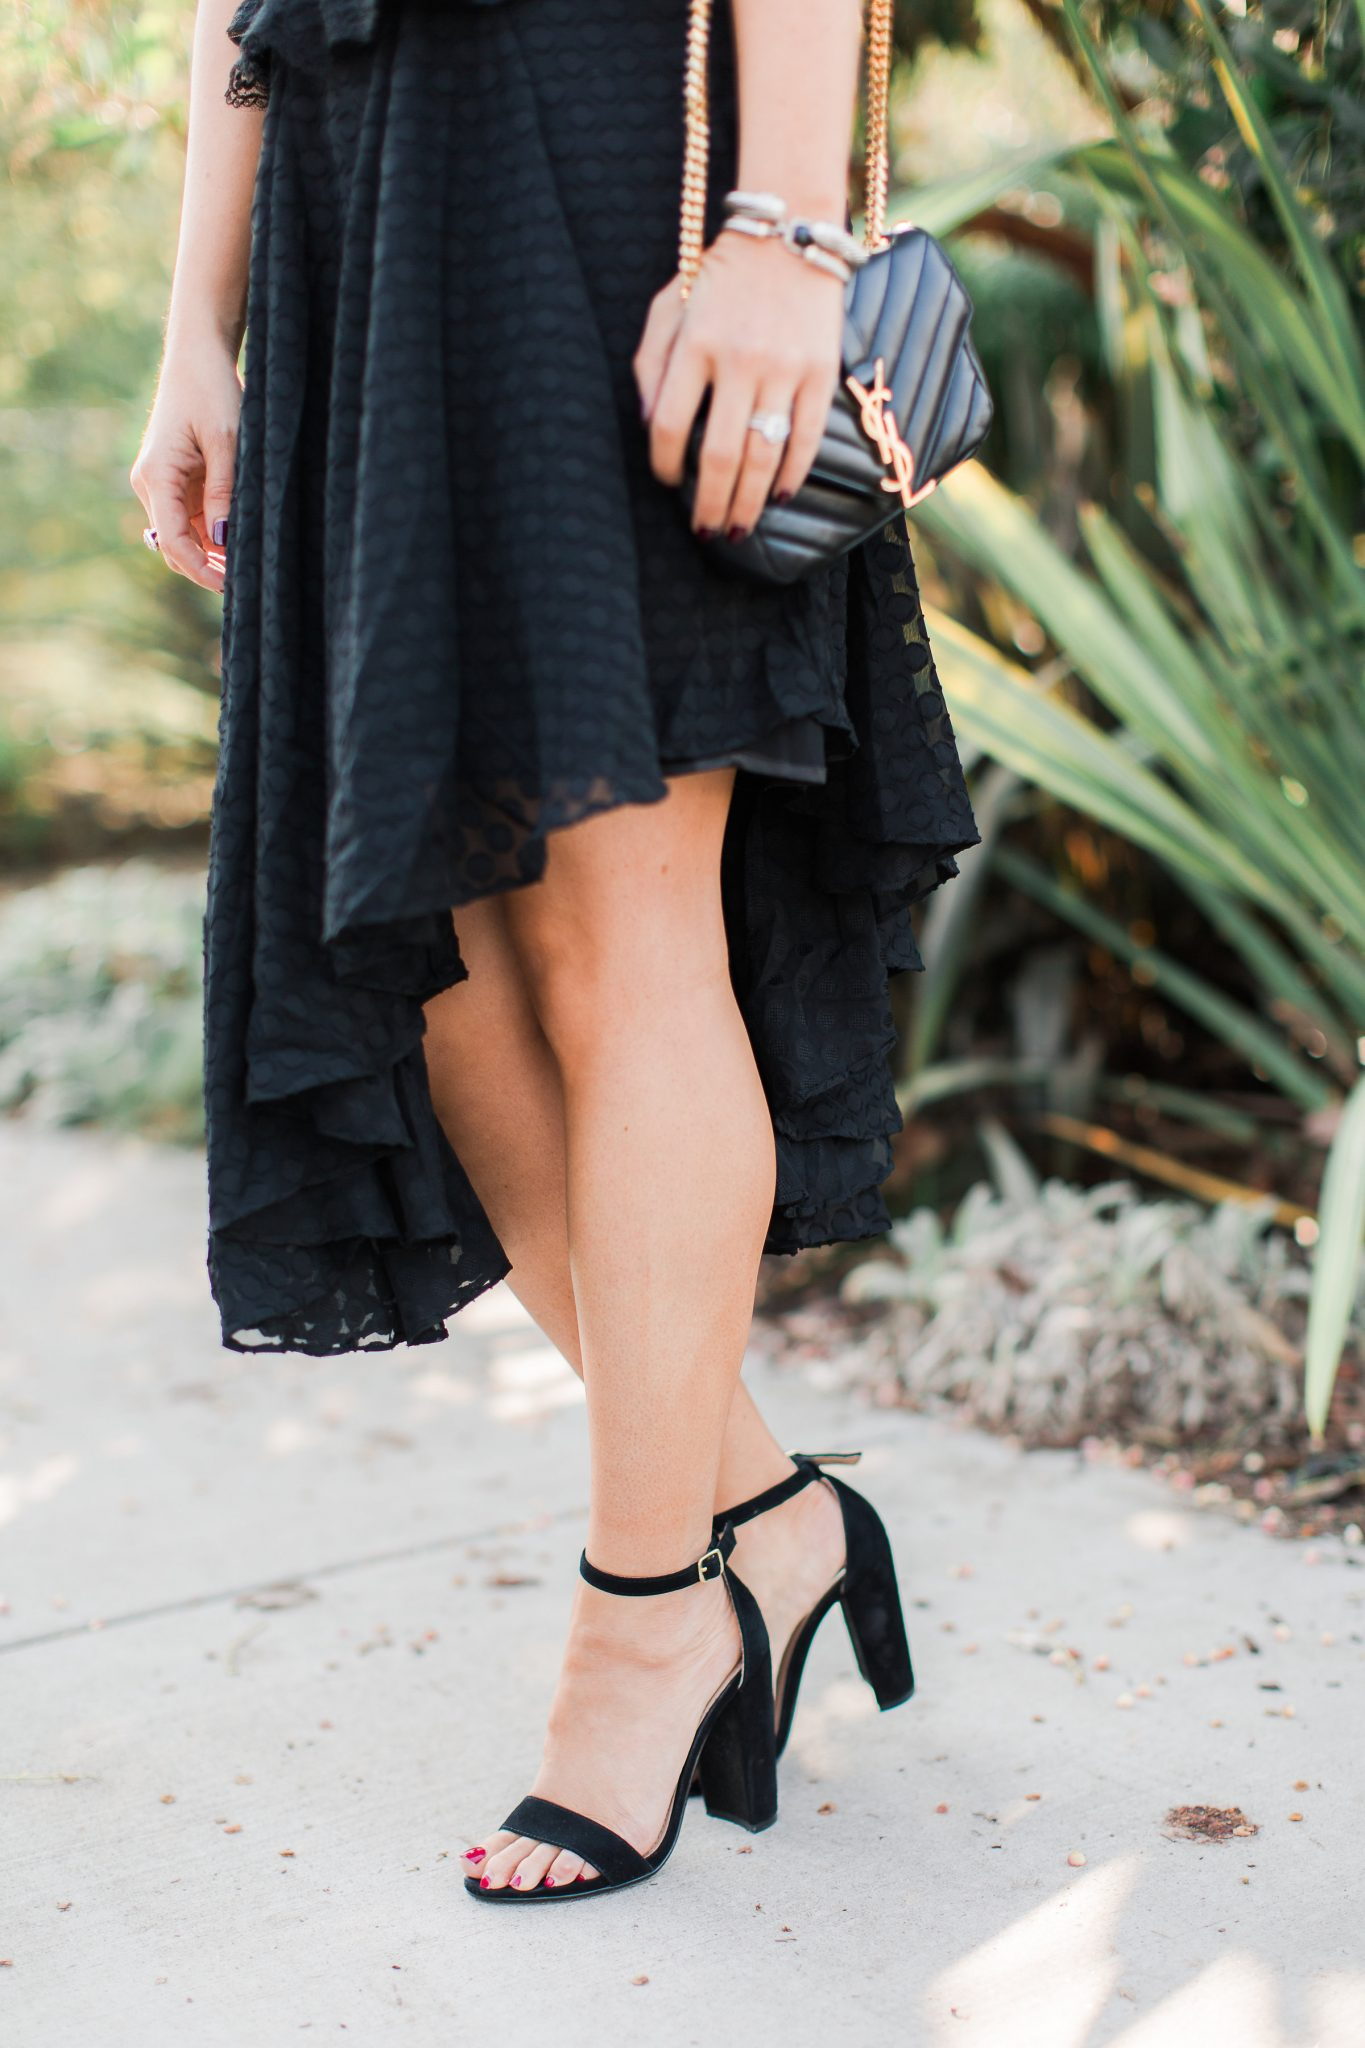 Maxie Elle | Little black dress - Nordstrom Half Yearly Sale Picks & The Perfect LBD by popular Orange County fashion blogger Maxie Elle